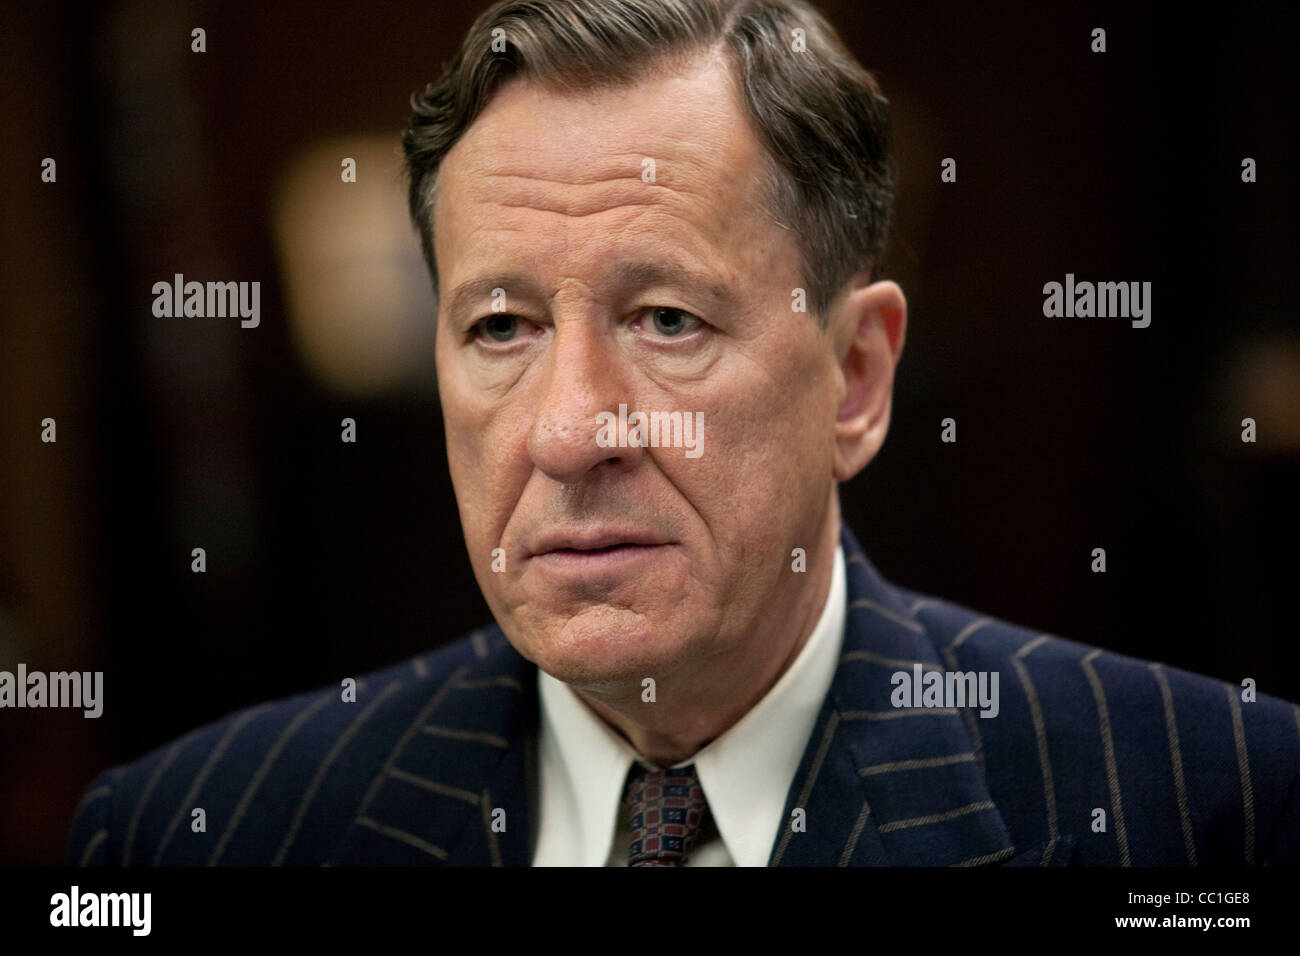 GEOFFREY RUSH THE KING'S SPEECH (2010) - Stock Image